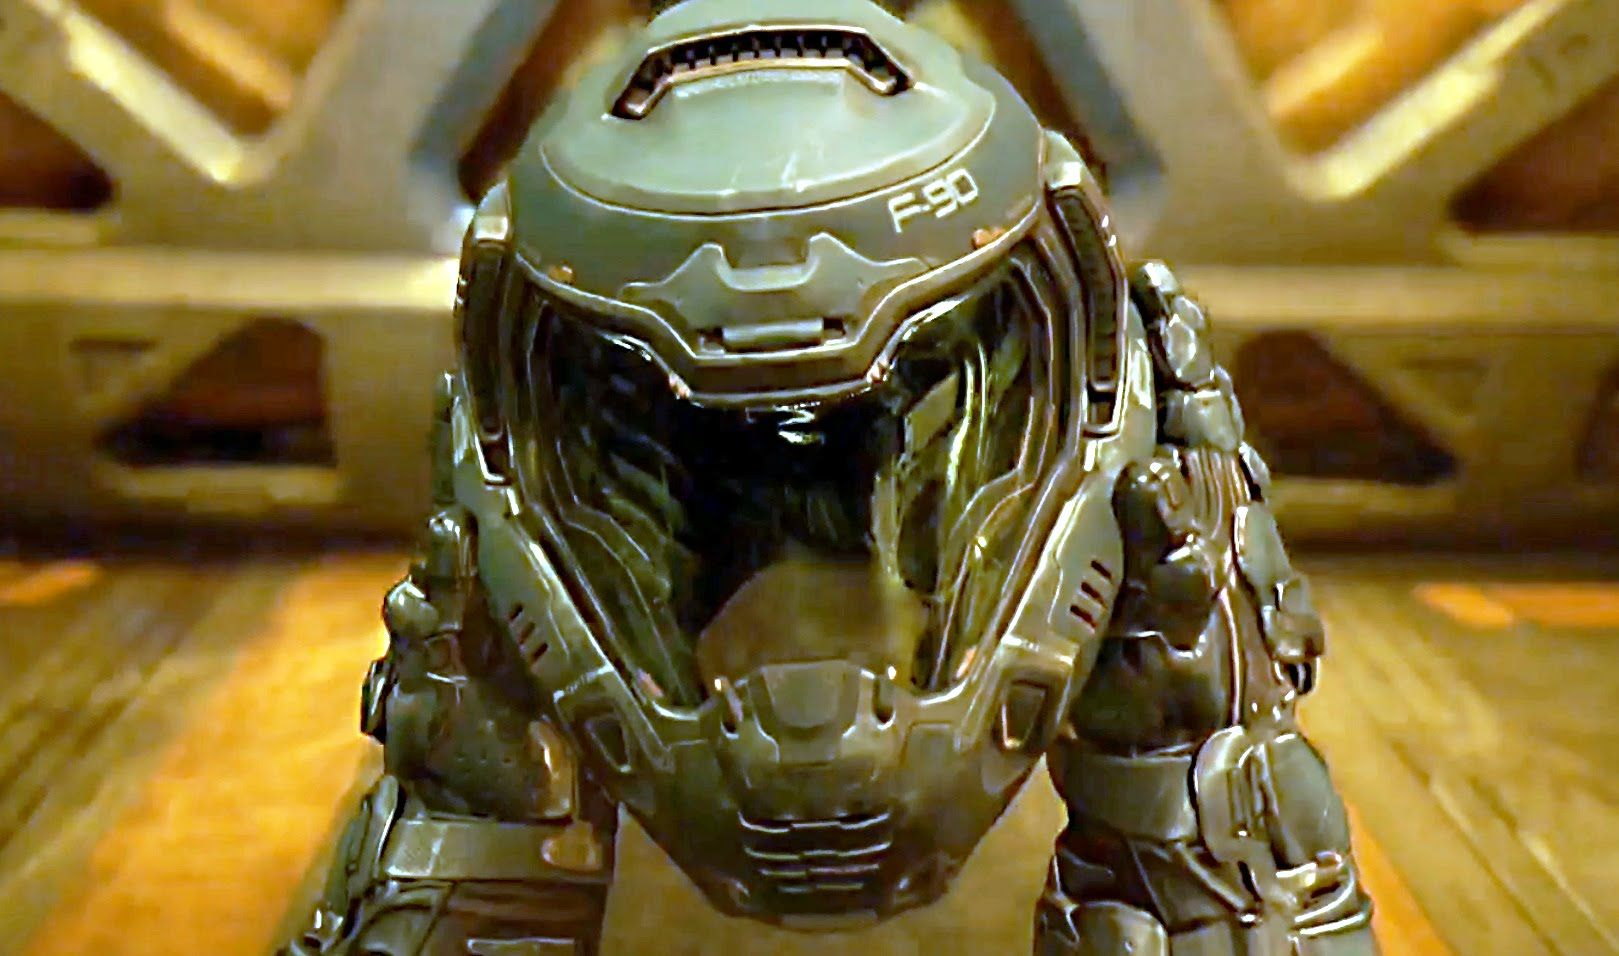 Doom 4 Gameplay Trailer I've never been much of a fan